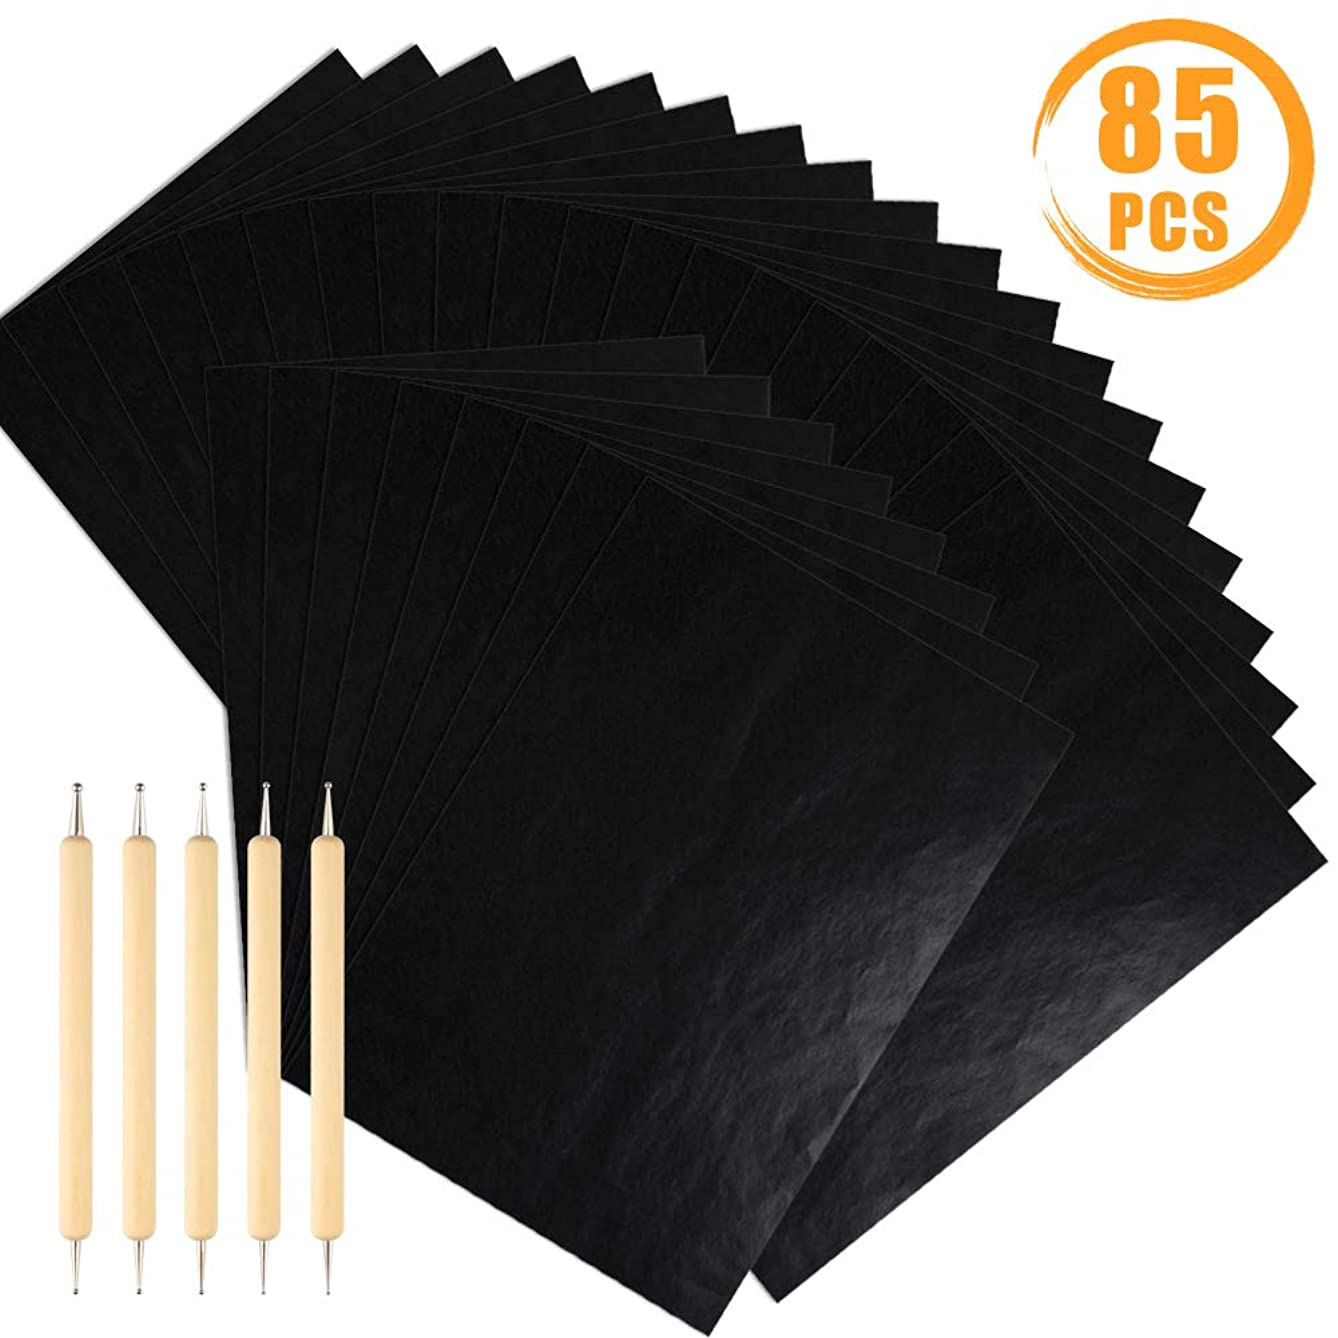 Quacoww 80 Sheets A4 Black Transfer Paper Carbon Paper for Wood, Paper, and Other Surfaces Tracing with 5pcs Trace Tools